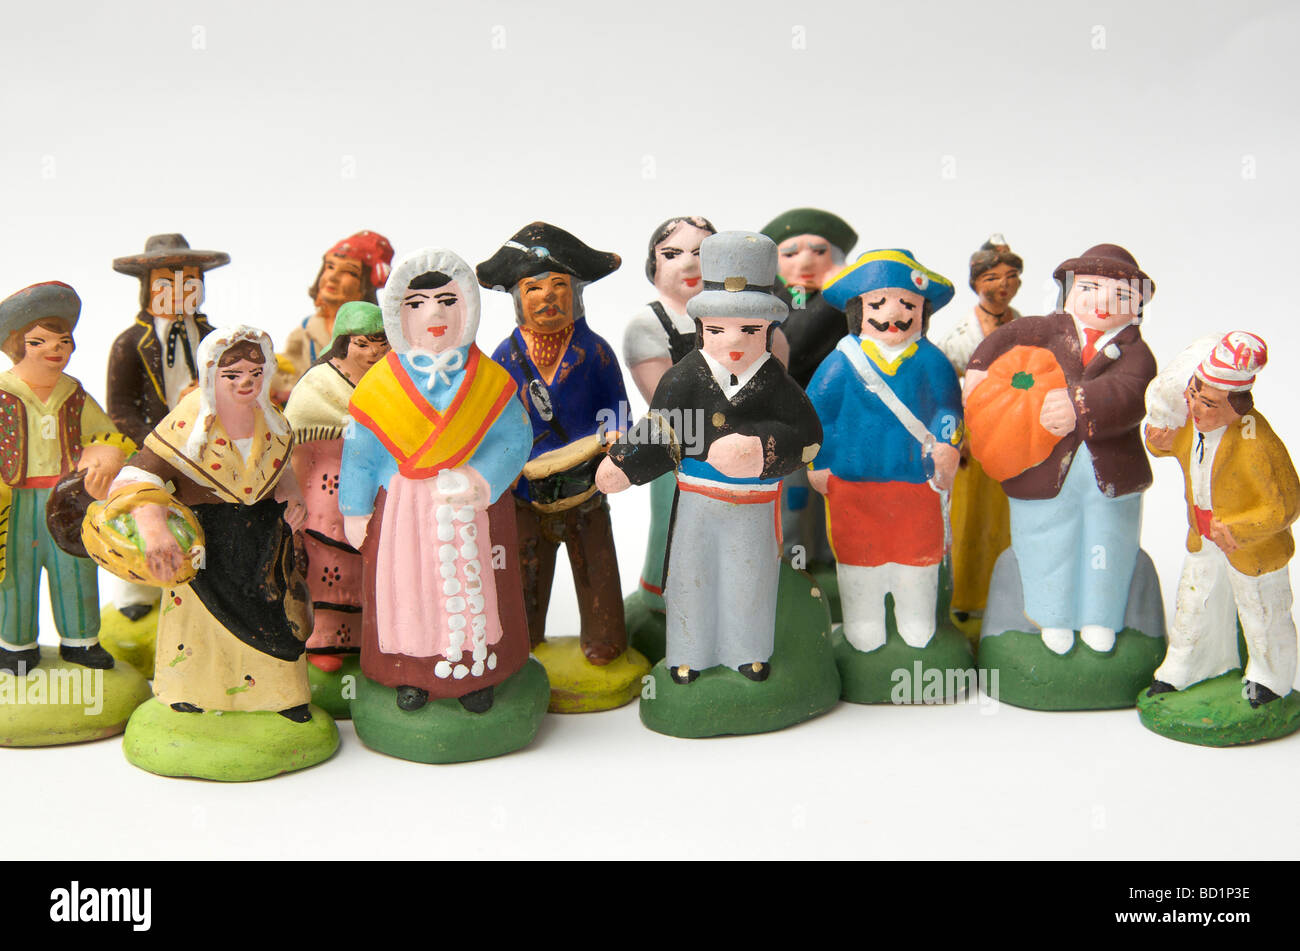 Santons, traditional French ceramic terracotta villagers figurines from Provence, France - Stock Image